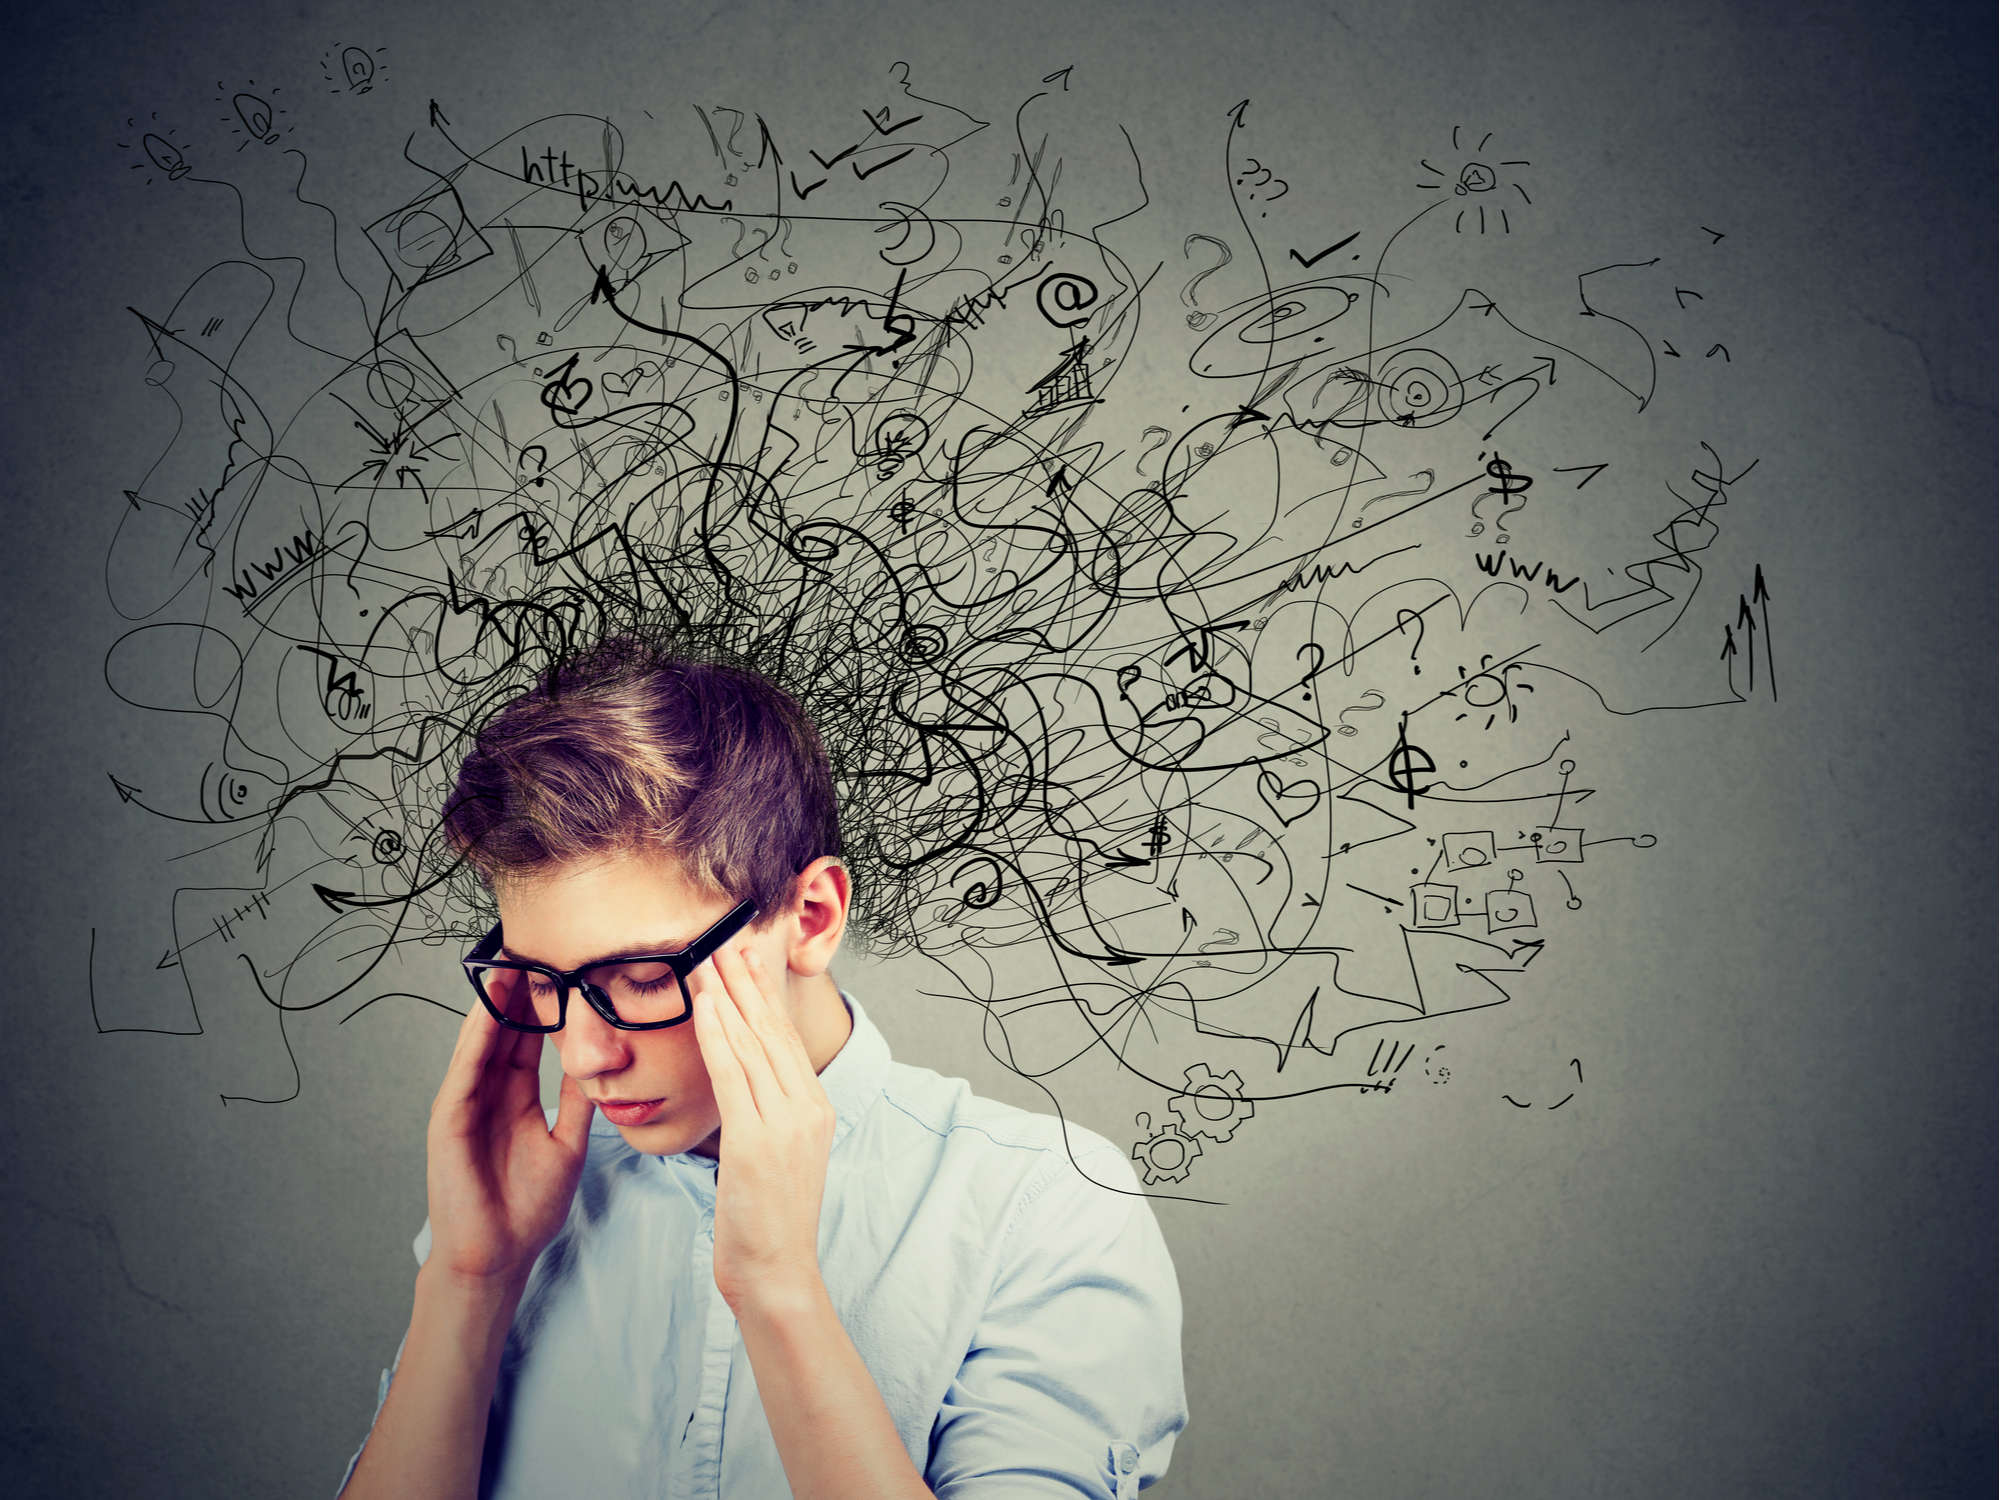 Don't confuse ADHD with an underlying vision problem